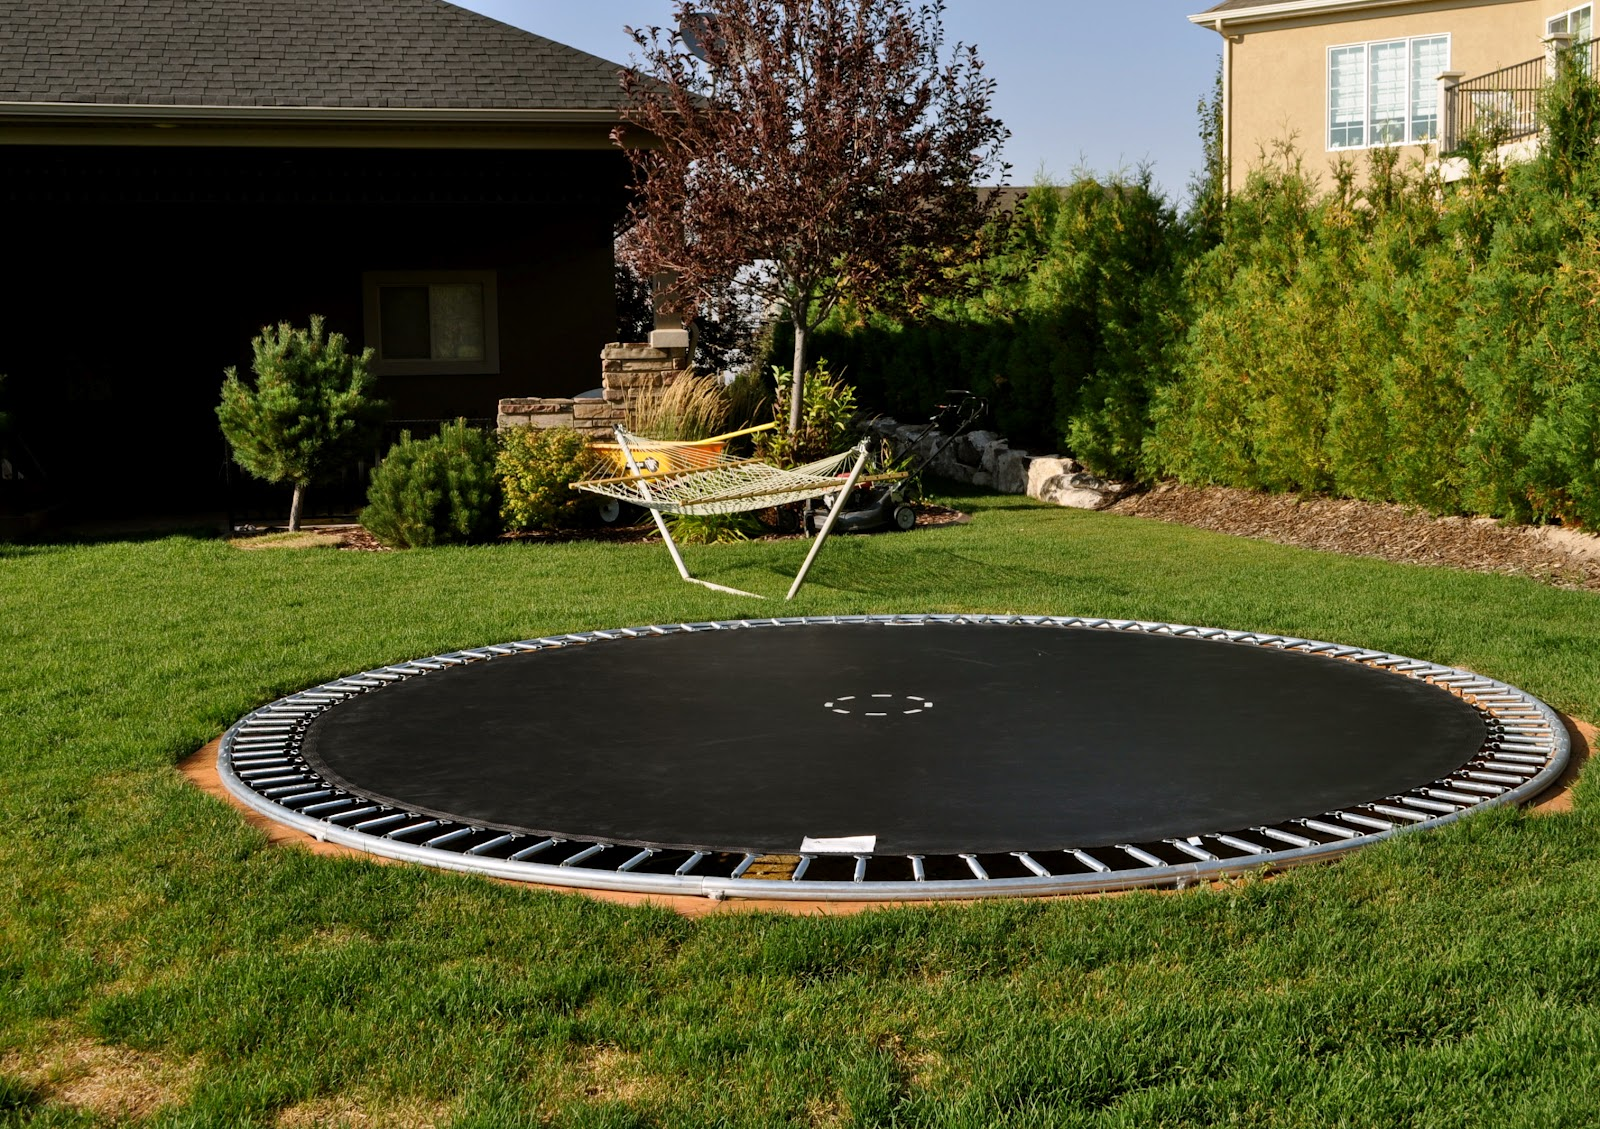 23 imageries and concept in ground trampoline djenne homes 58274